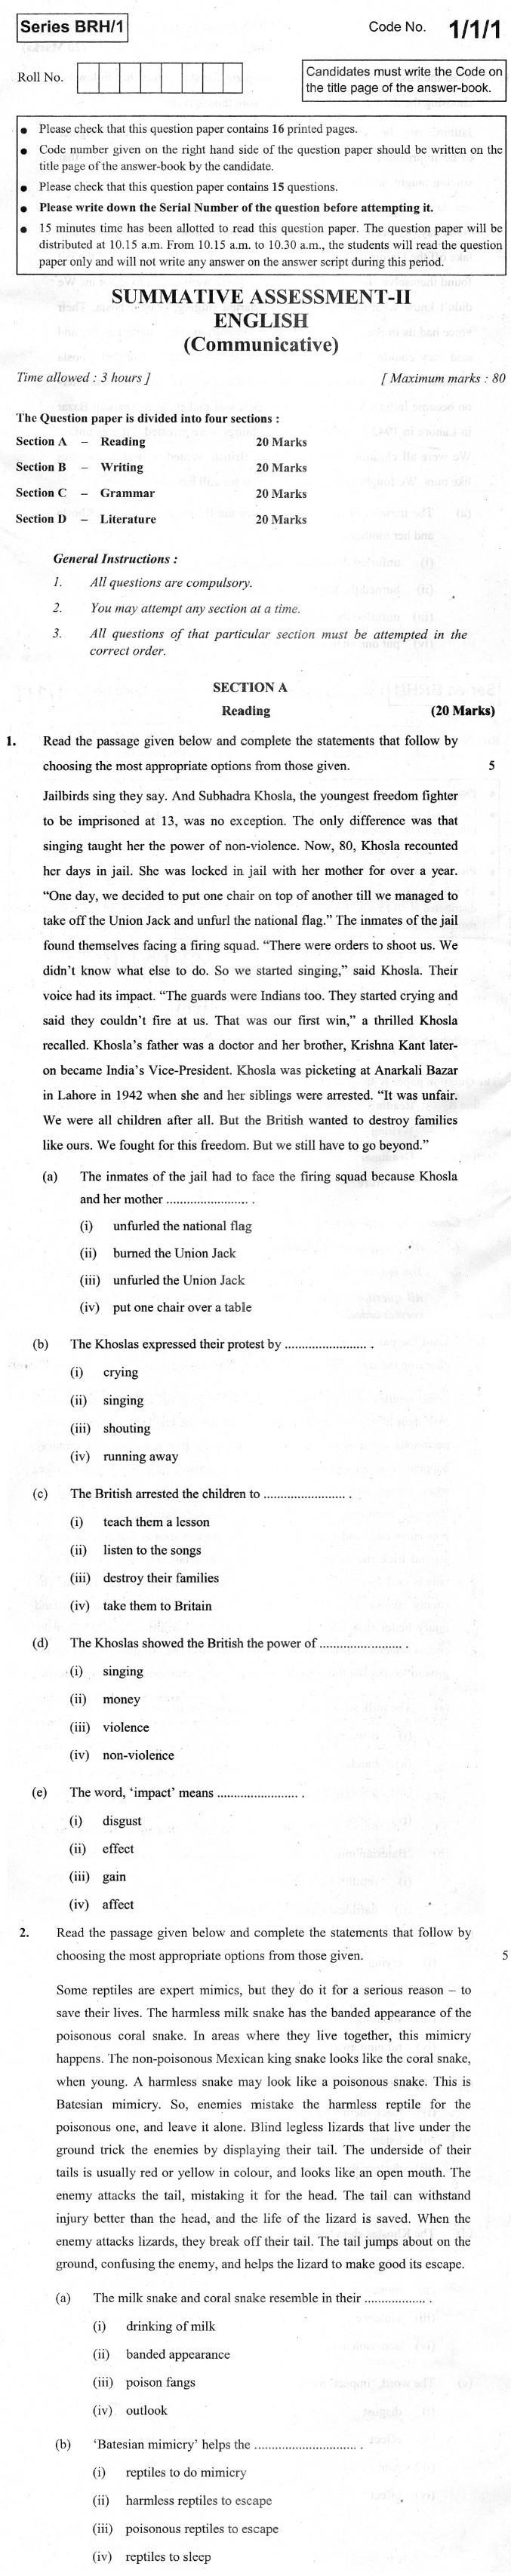 CBSE Class X Previous Year Question Papers 2012 English Communicative